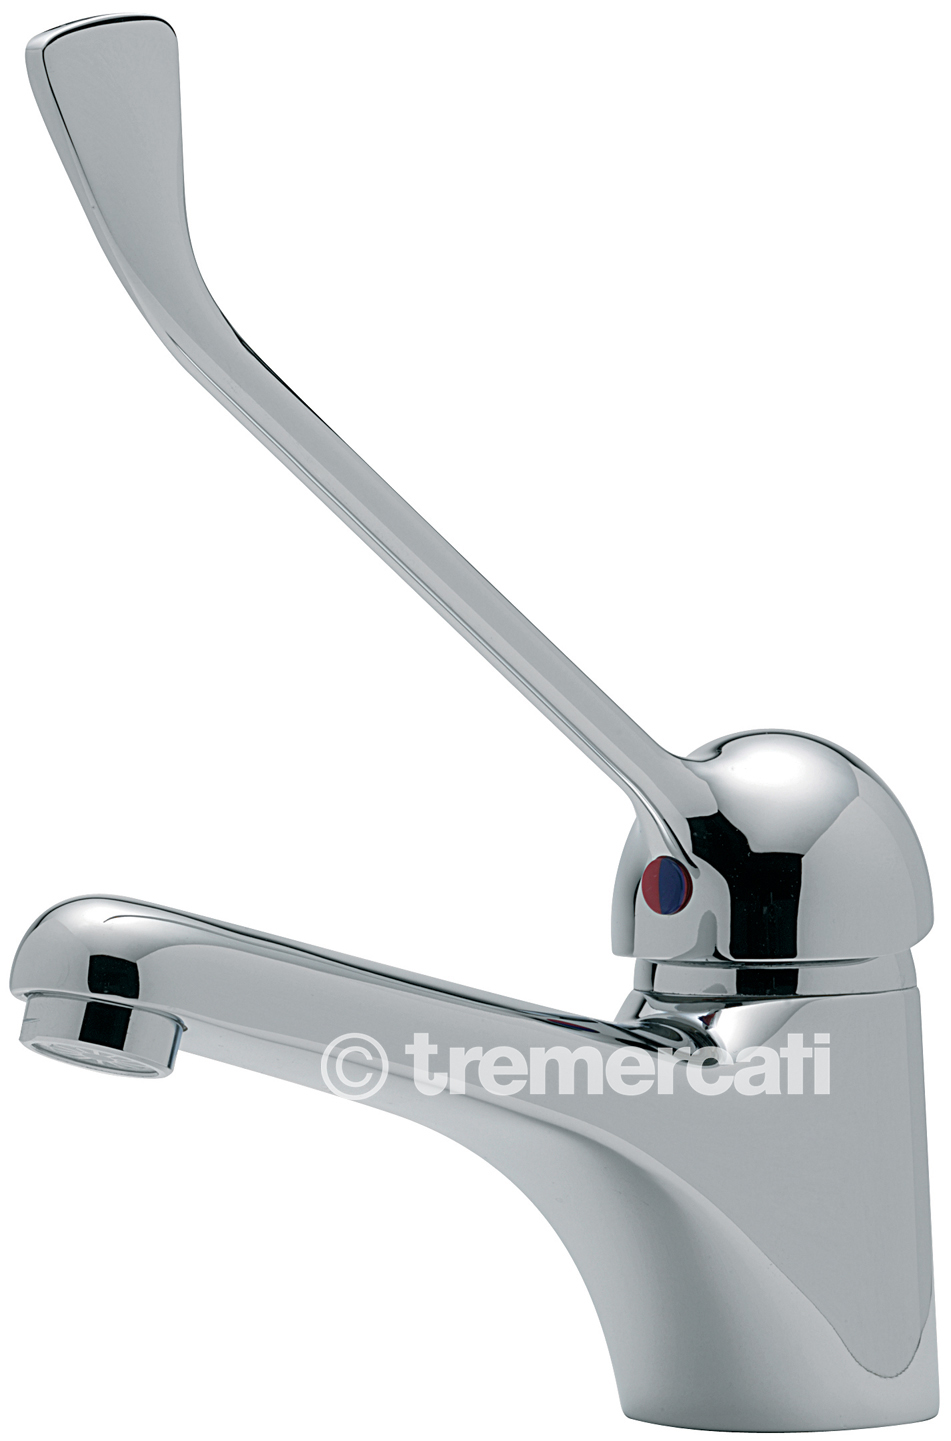 TRE MERCATI MODENA MONO BASIN MIXER WITH EXTENDED LEVER CHROME PLATED